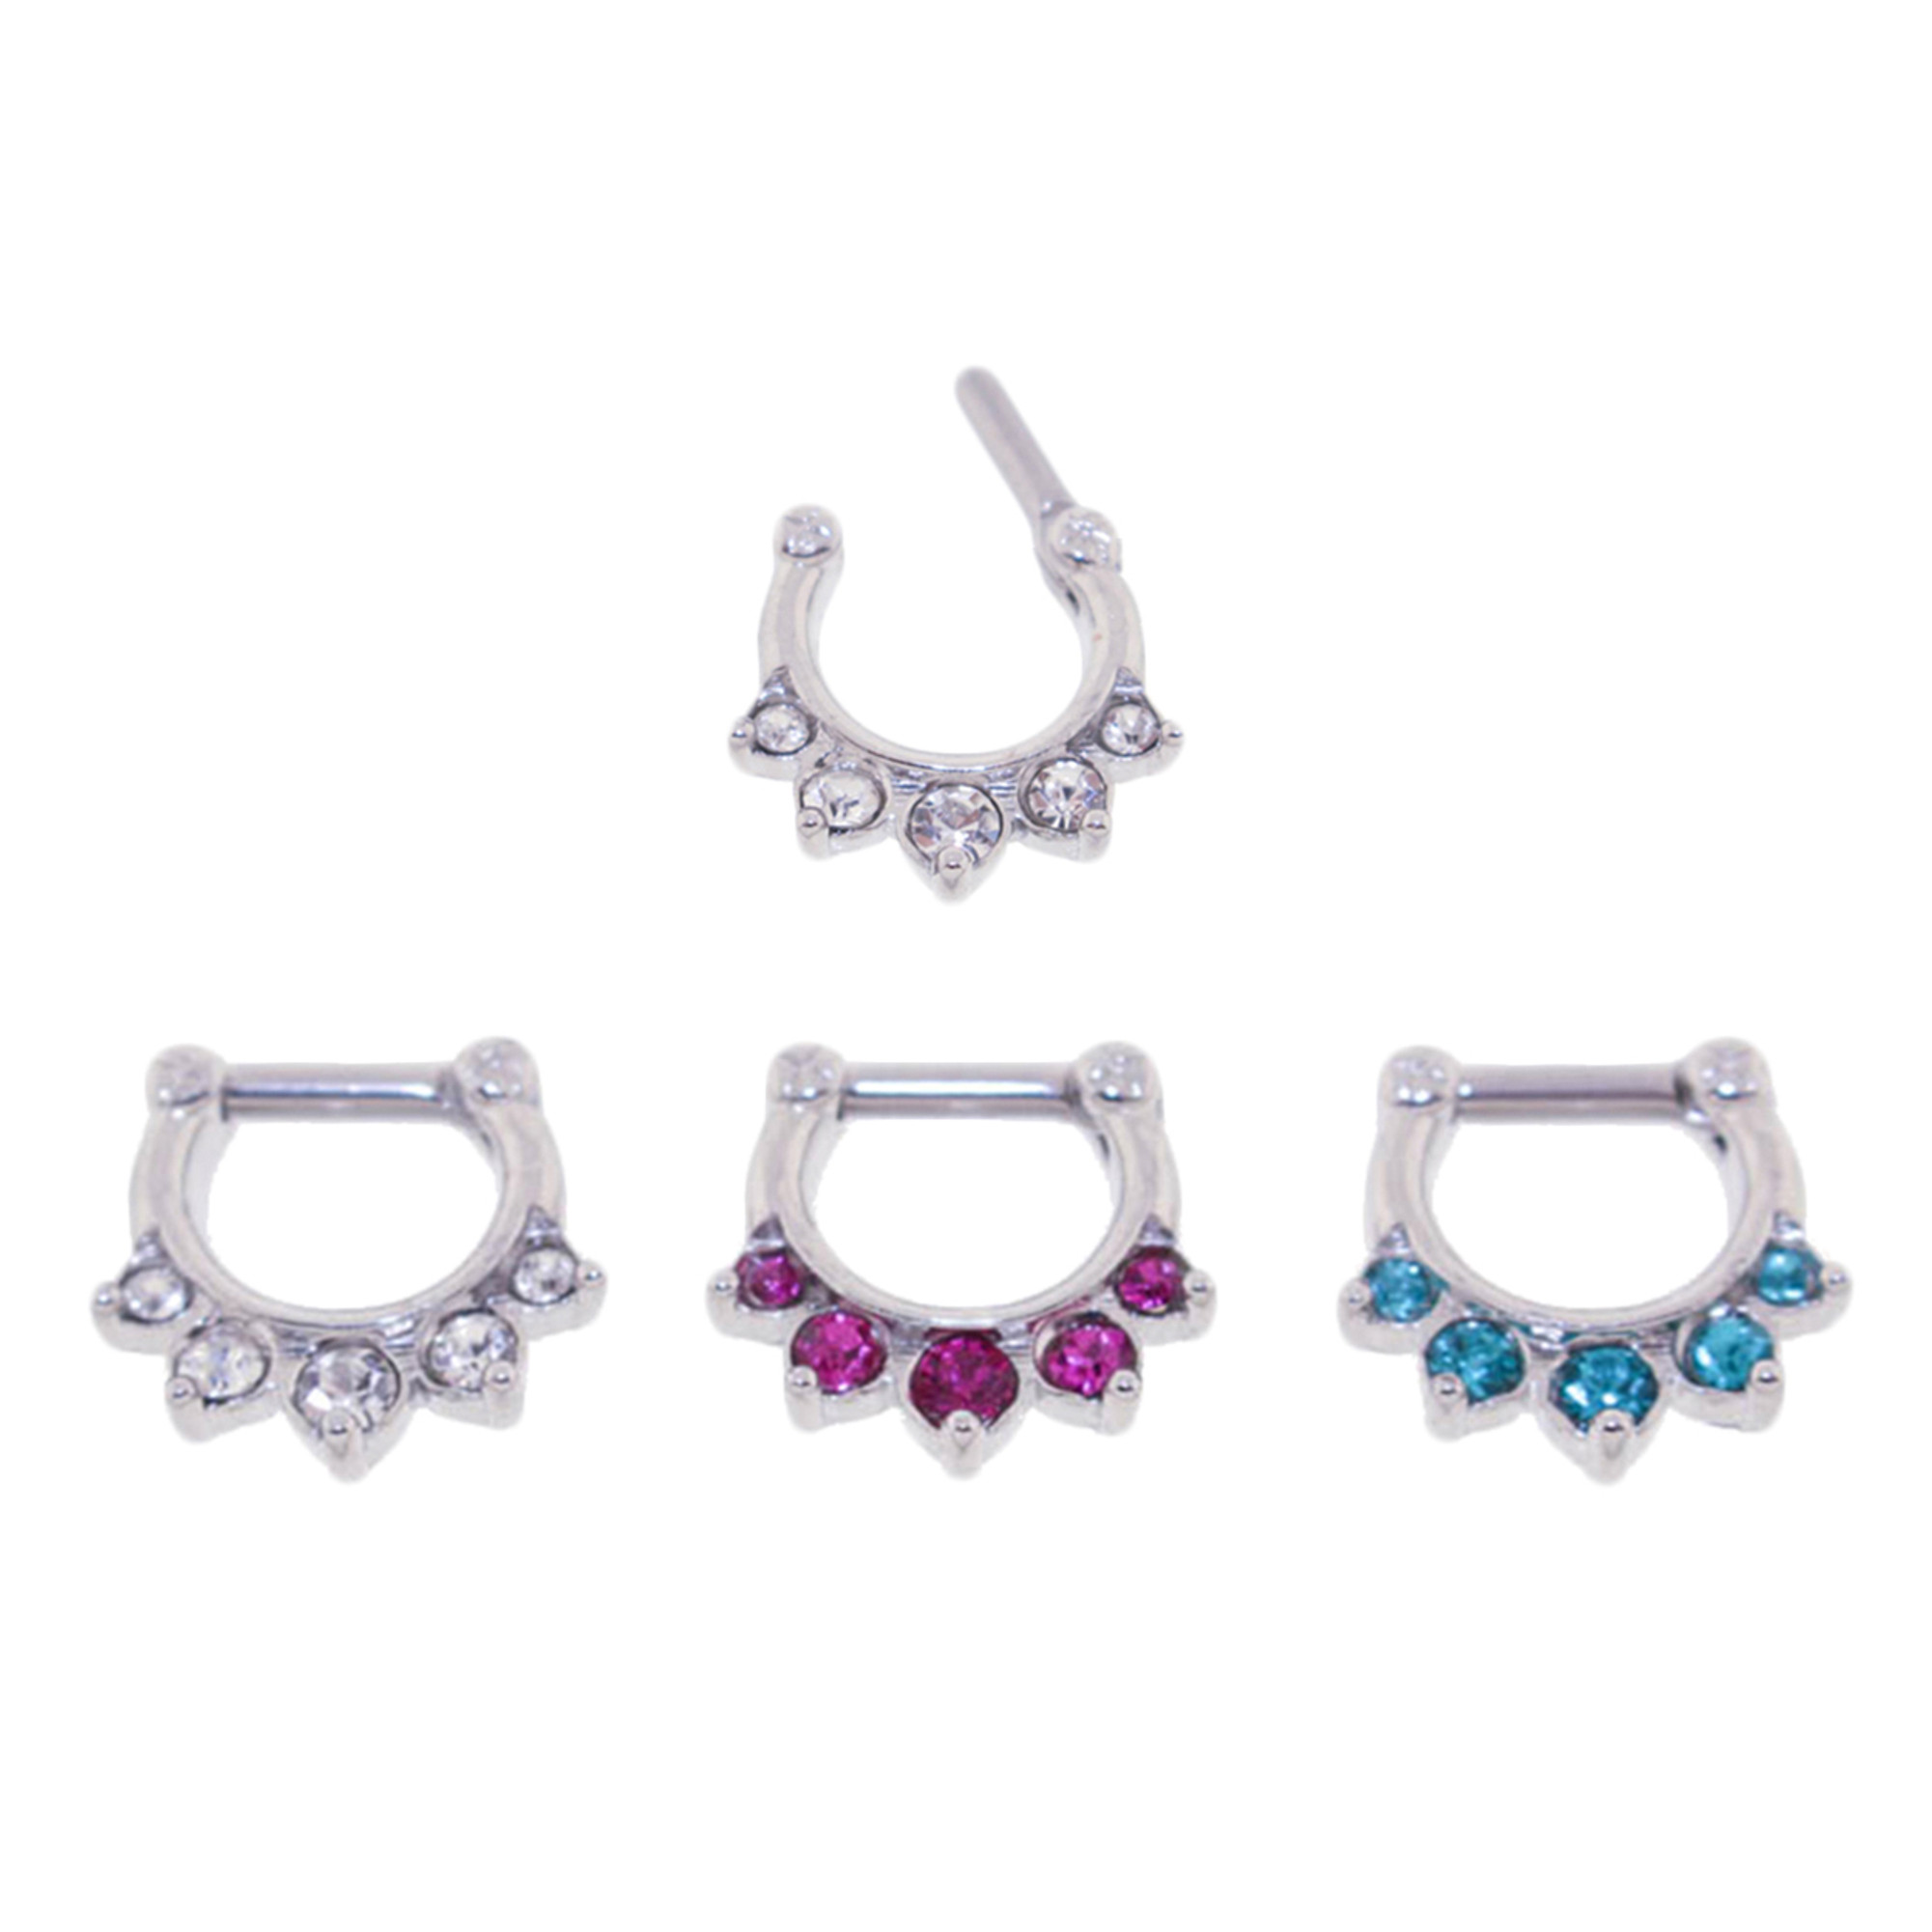 Lex Lu Set Of 3 Steel Cz Gem Septum Clicker Nose Ring Hoops 16 Or 14 Gauge Scg001 Lex Lu